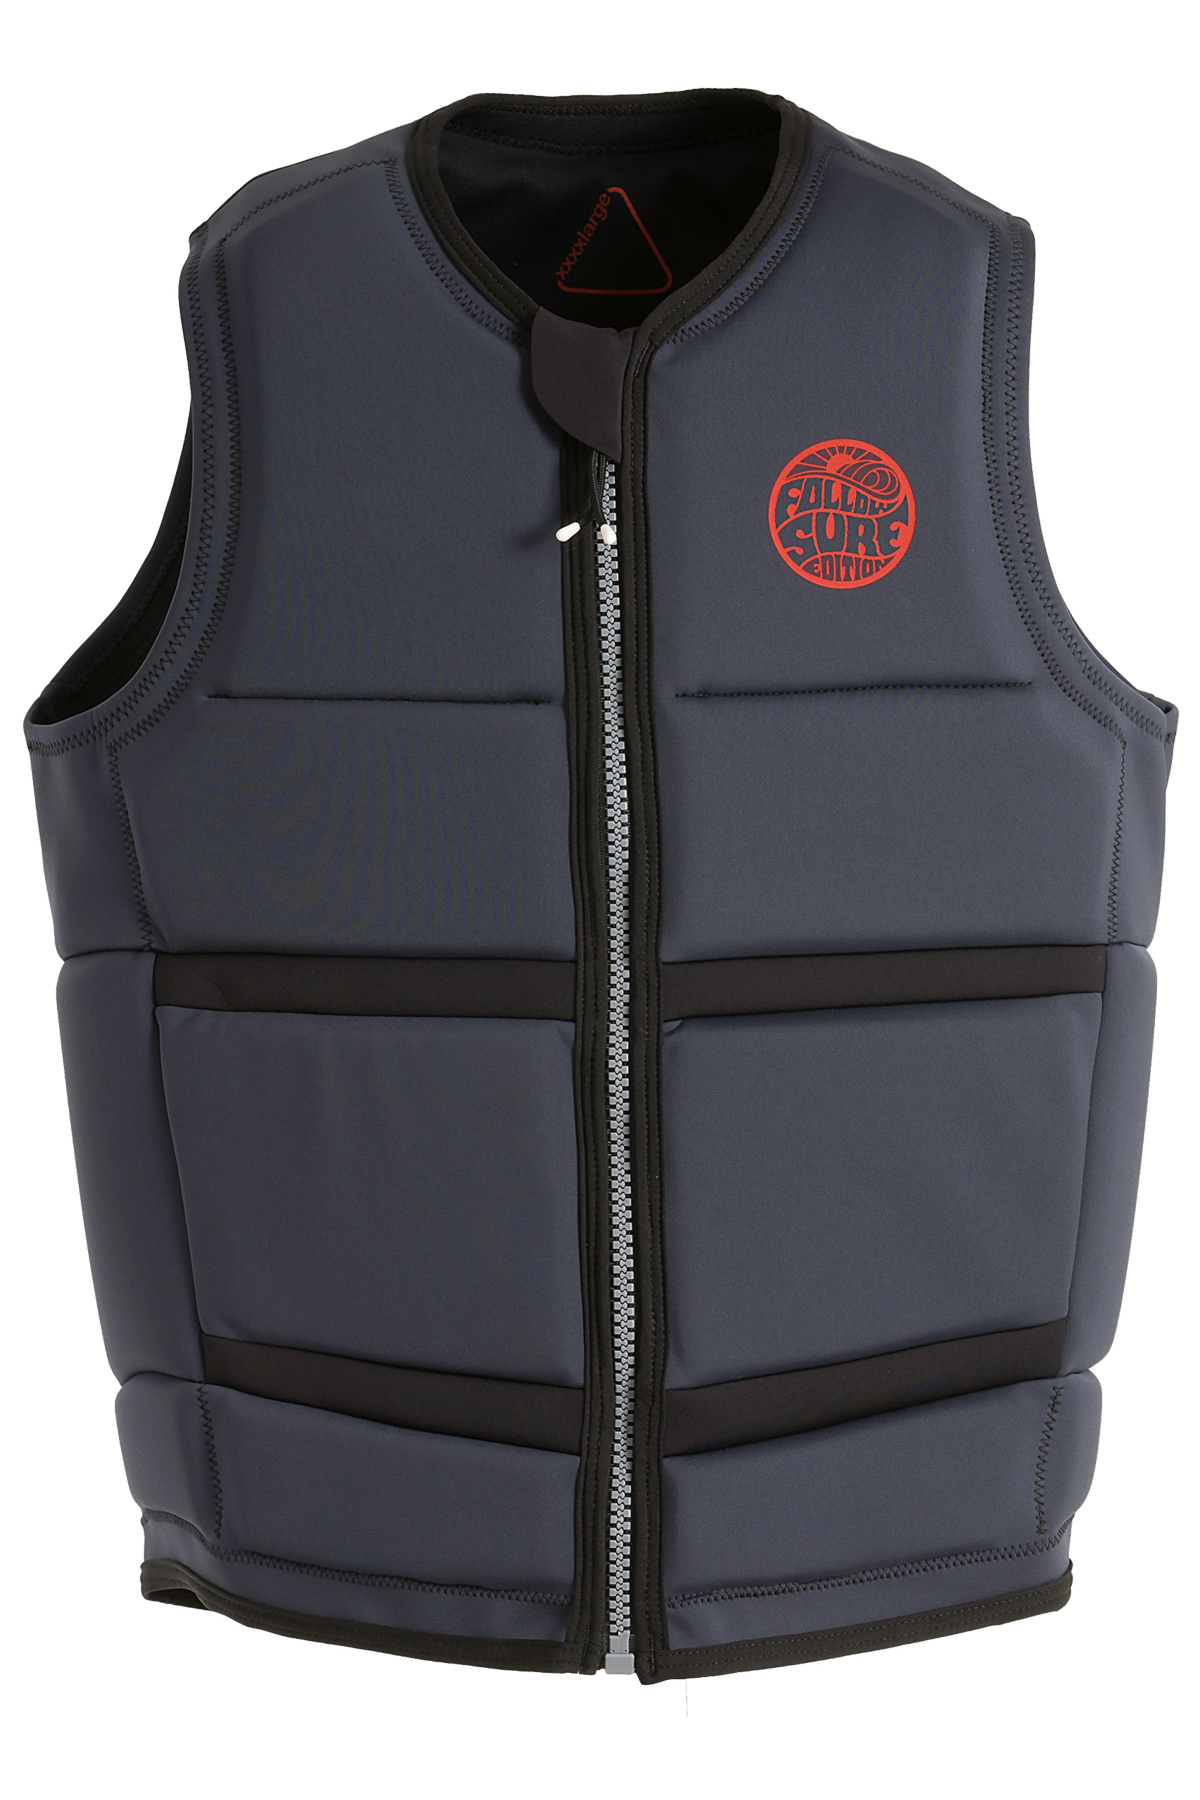 MENS SURF EDITON PLUS IMPACT VEST - BLACK FOLLOW 2019